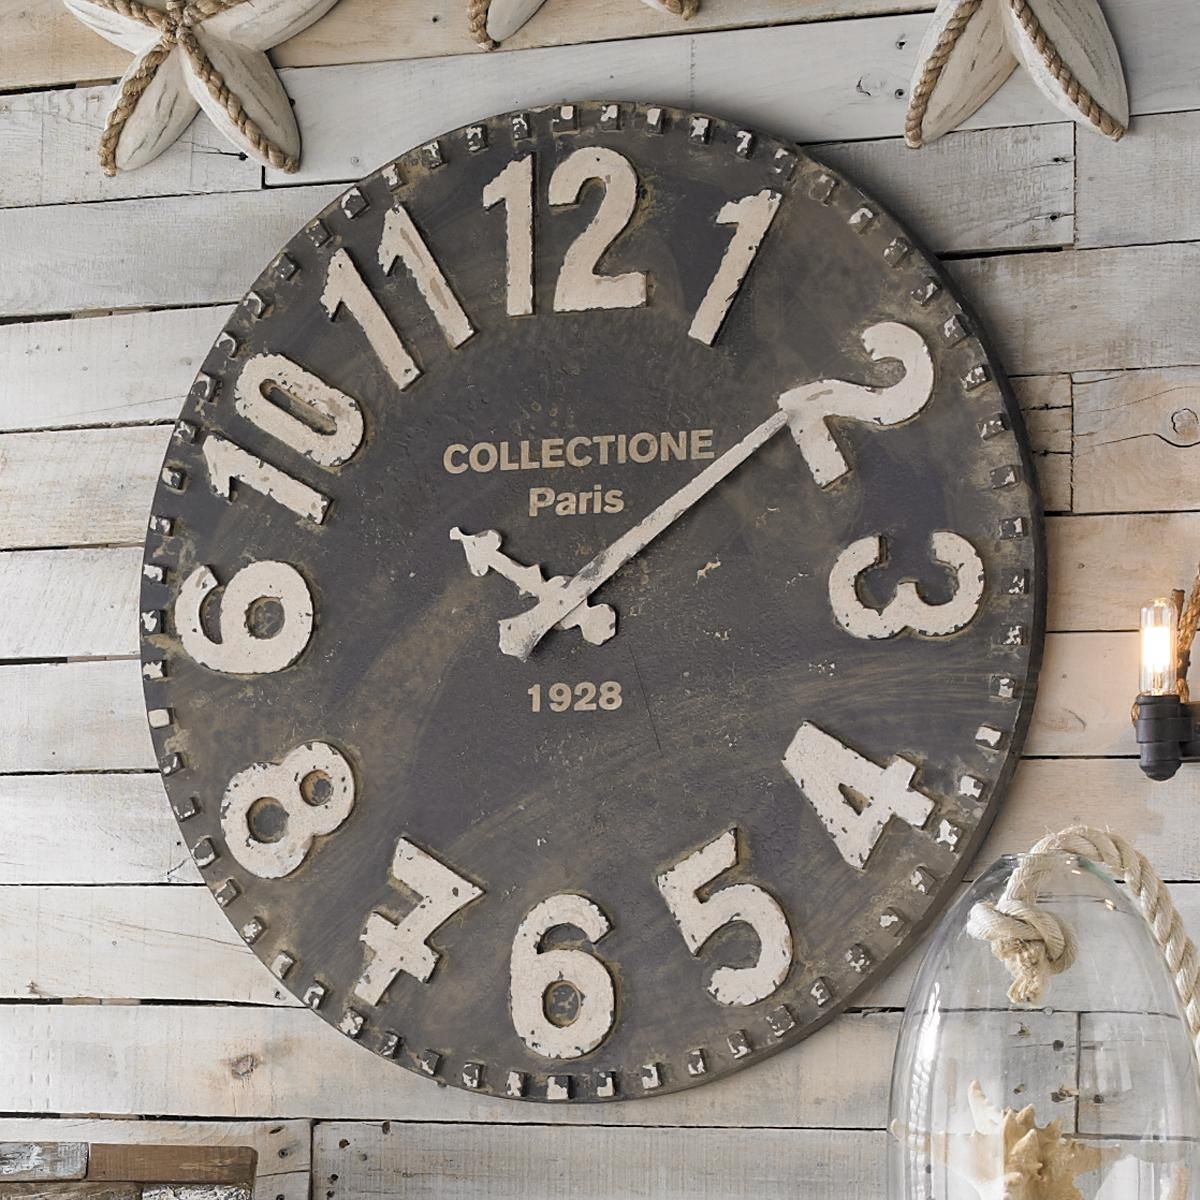 Am americana country wall clocks - Earth De Fleur Homewares Rustic Metal Wood Beach Decor Wall Clock Pink Wall Clocks Pinterest Wall Clocks Clocks And Metals